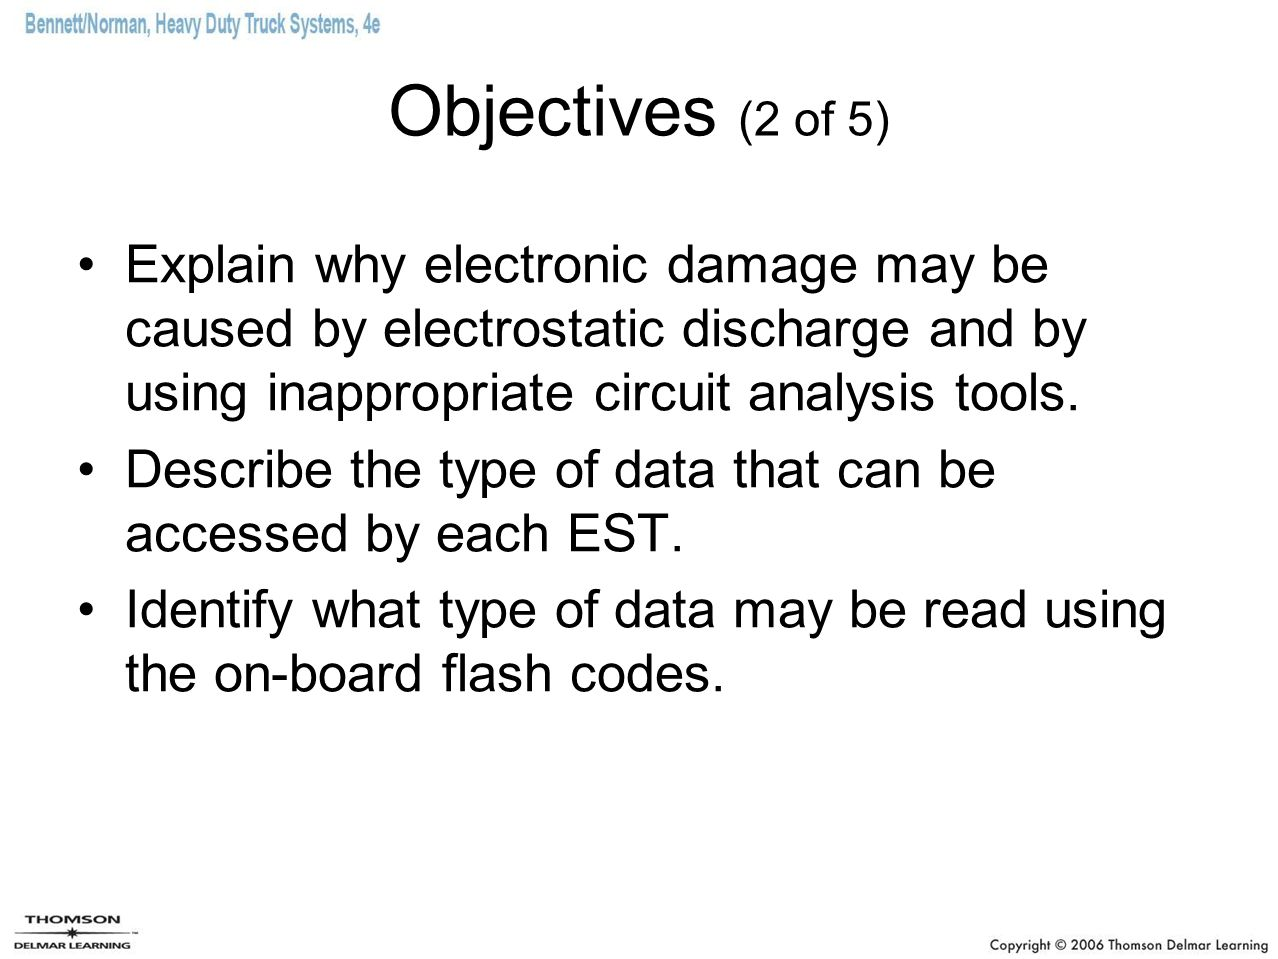 Objectives (2 of 5) Explain why electronic damage may be caused by electrostatic discharge and by using inappropriate circuit analysis tools. Describe